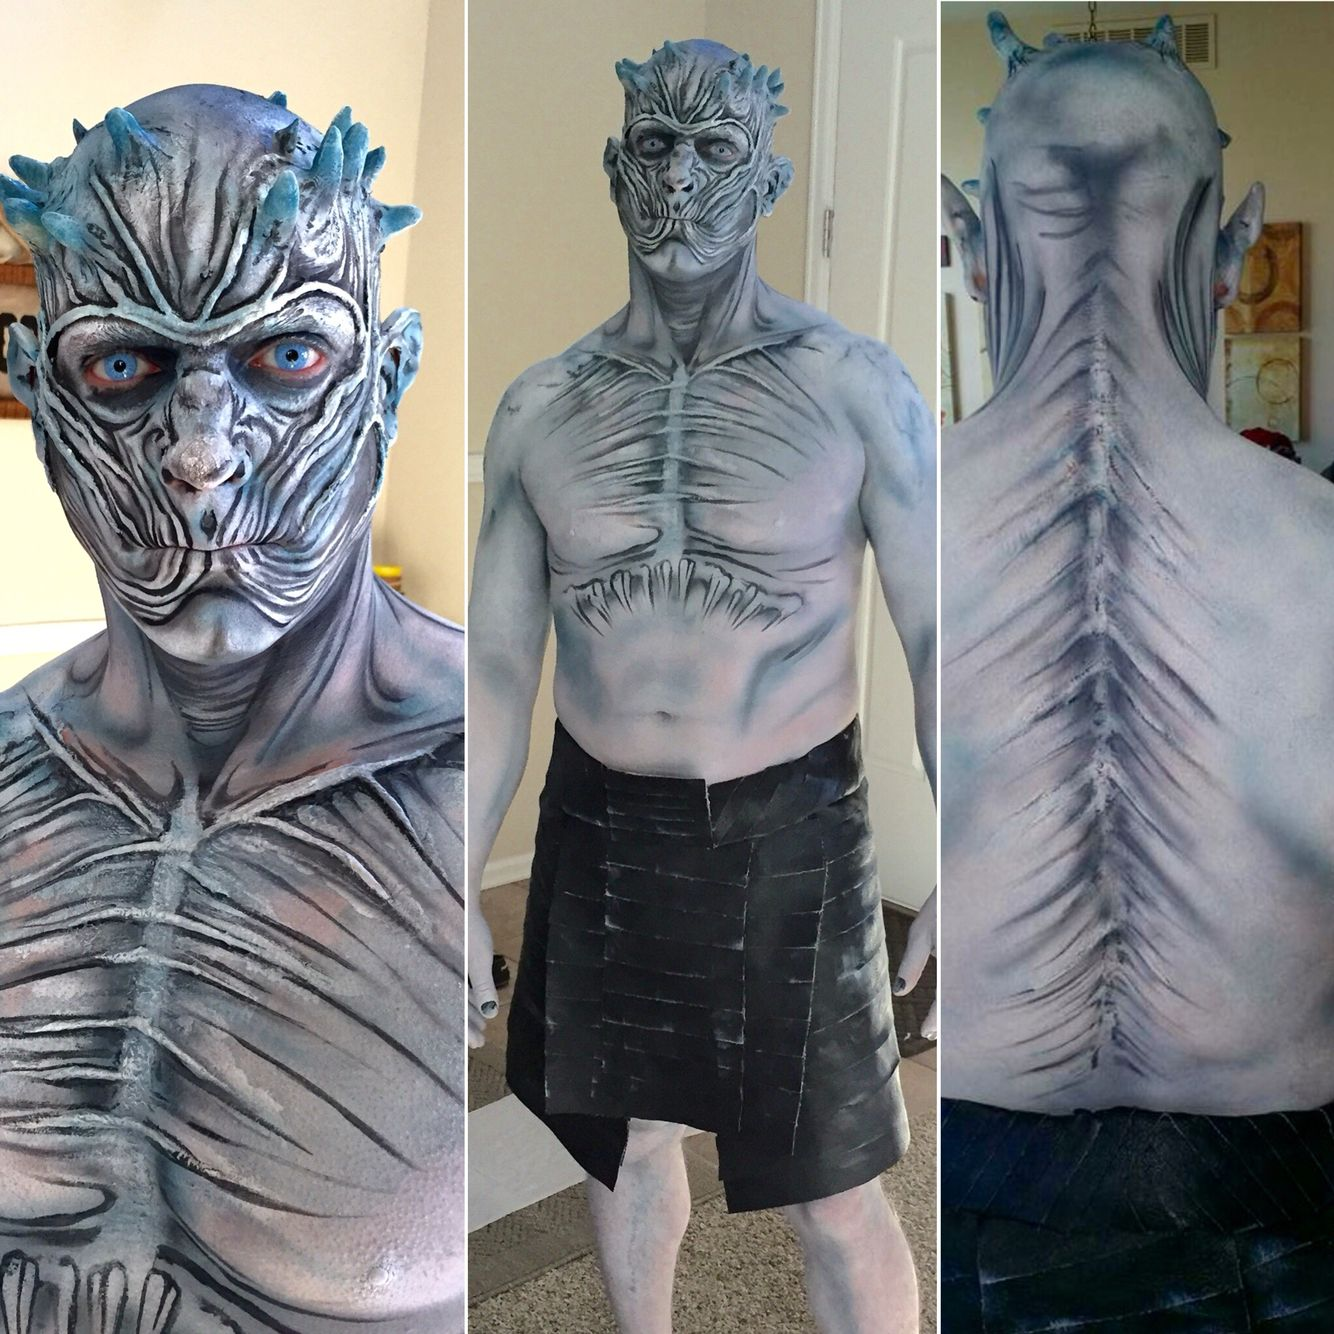 game of thrones white walker body painting for halloween